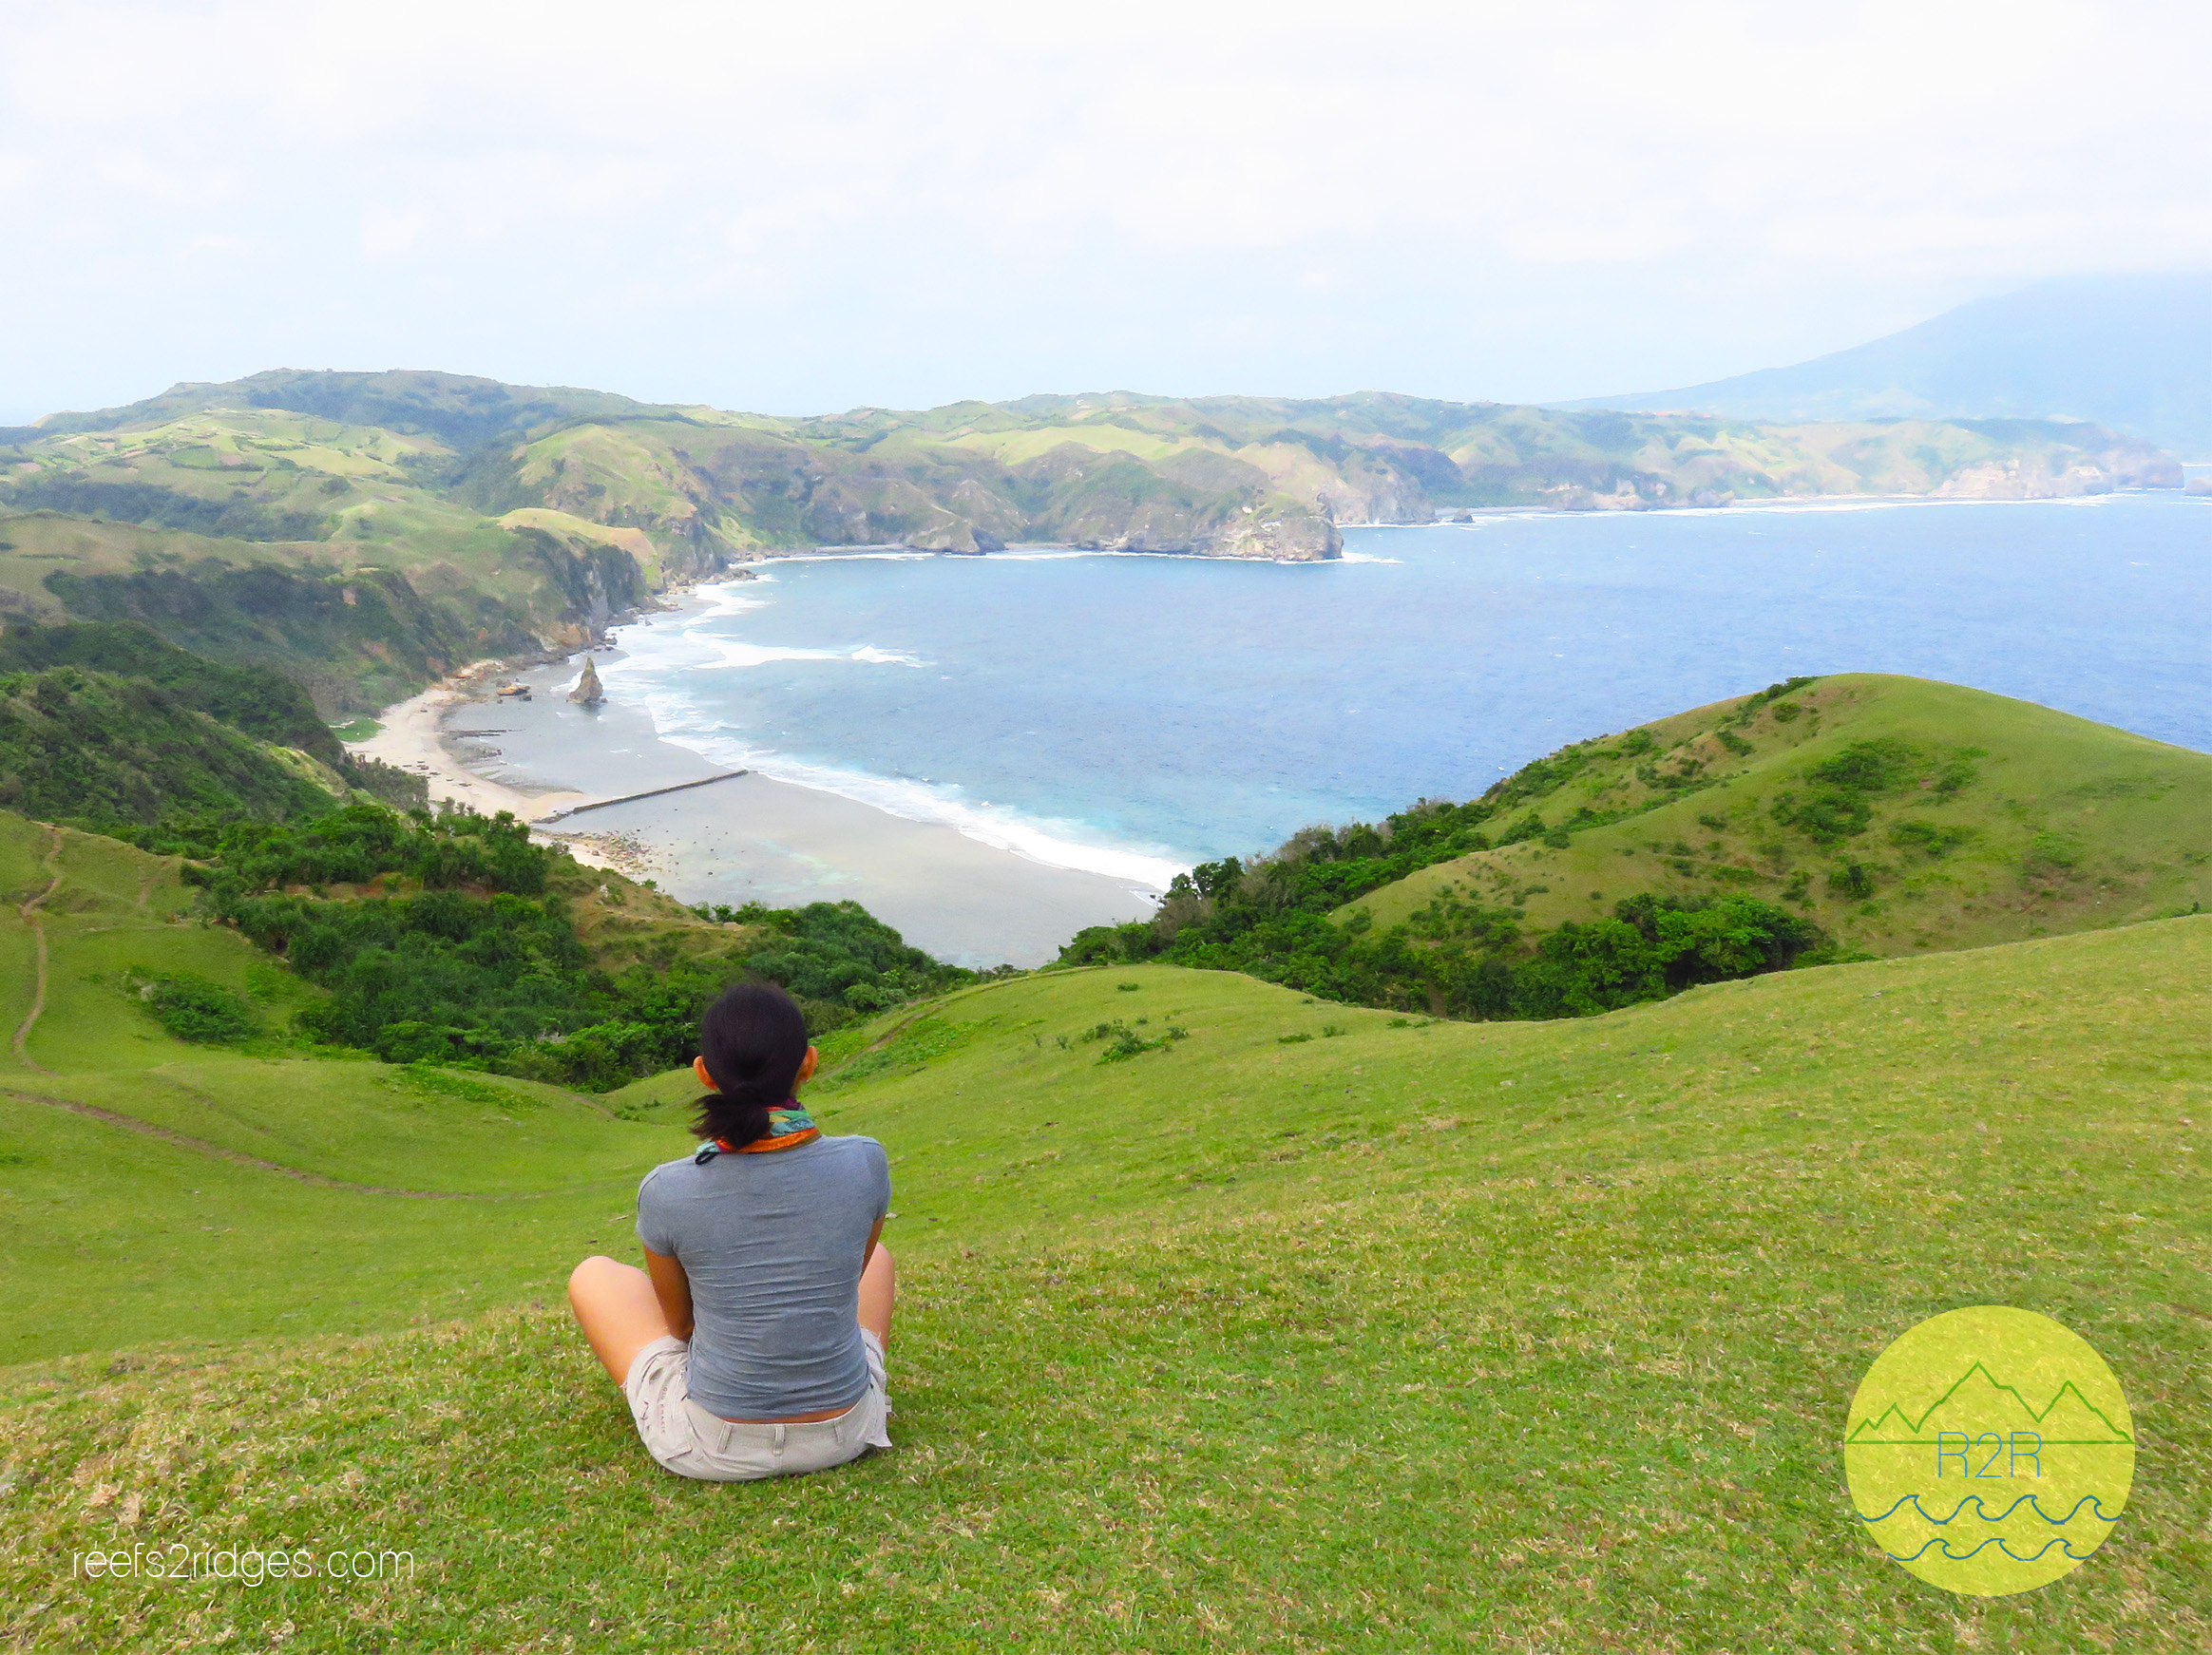 Home of the winds a travel guide on batanes reefs to ridges for Wallpaper home philippines